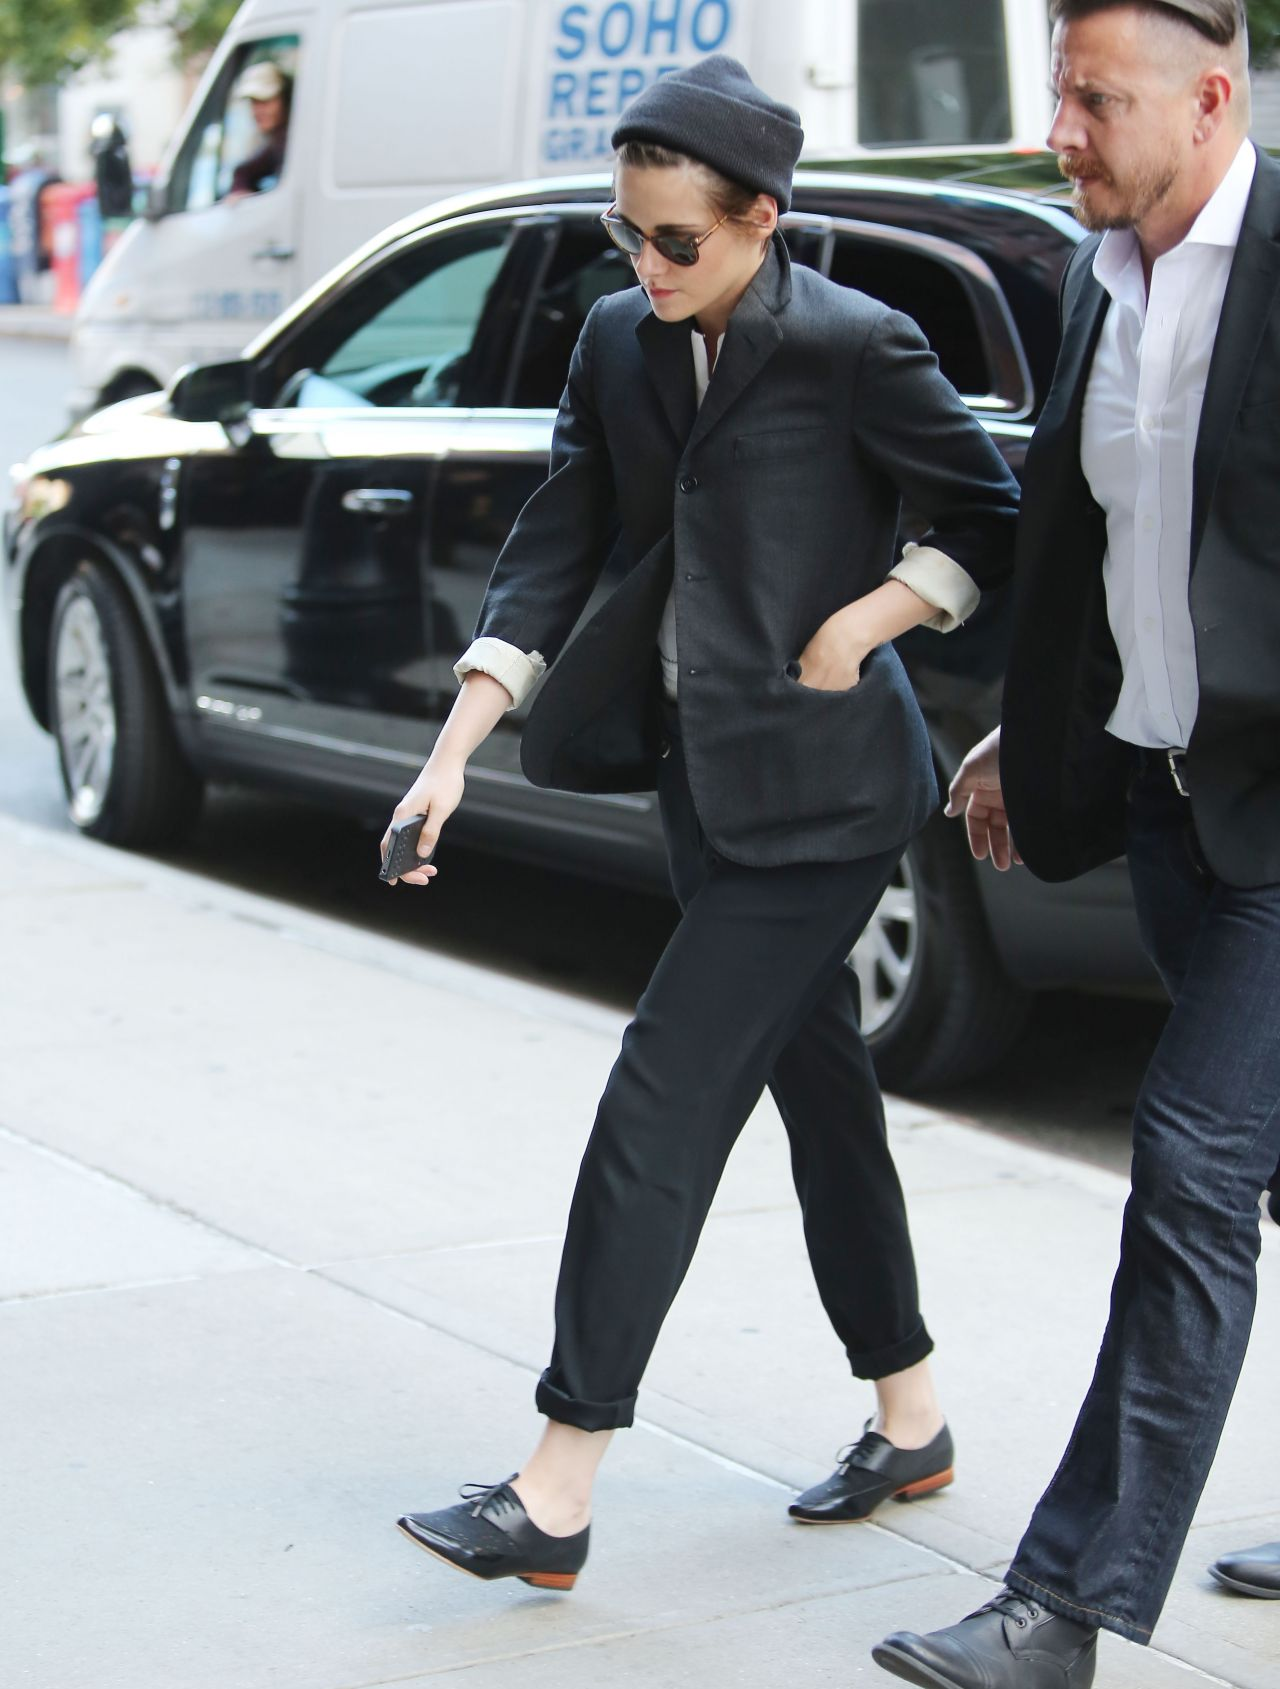 Kristen Stewart Street Style Fashion Out In New York City October 2014